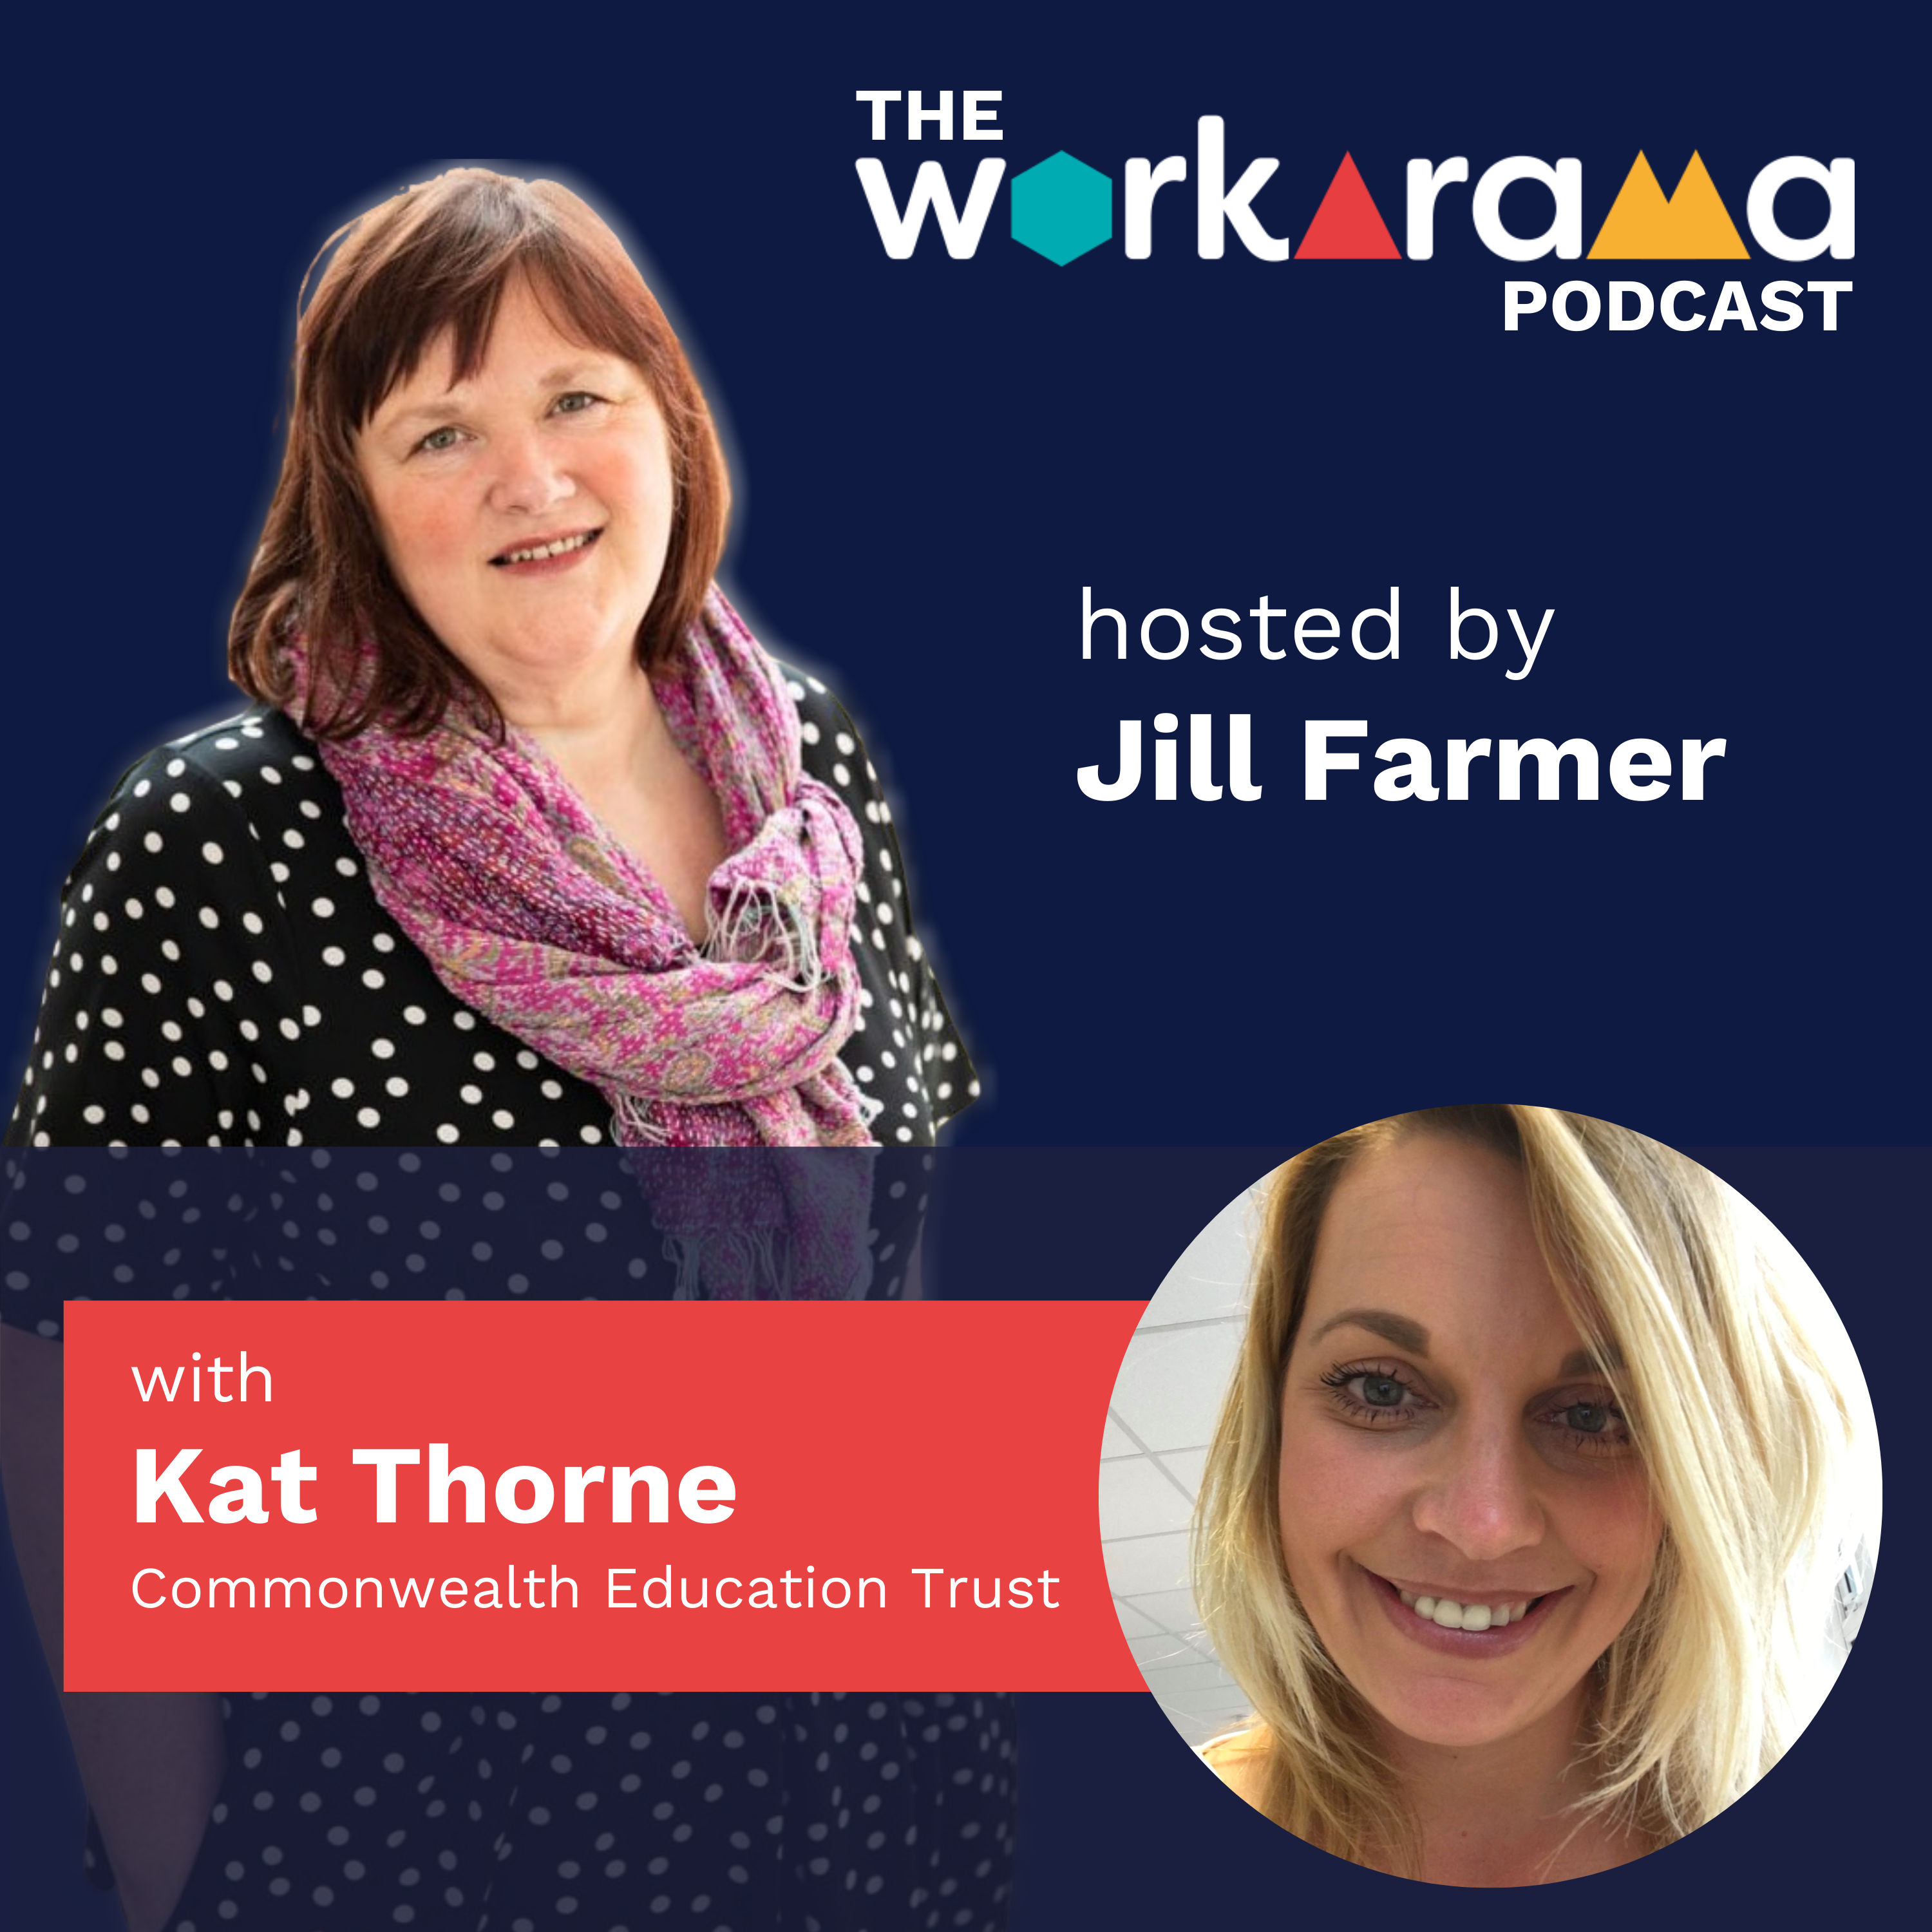 The Workarama Podcast with Kat Thorne, Commonwealth Education Trust